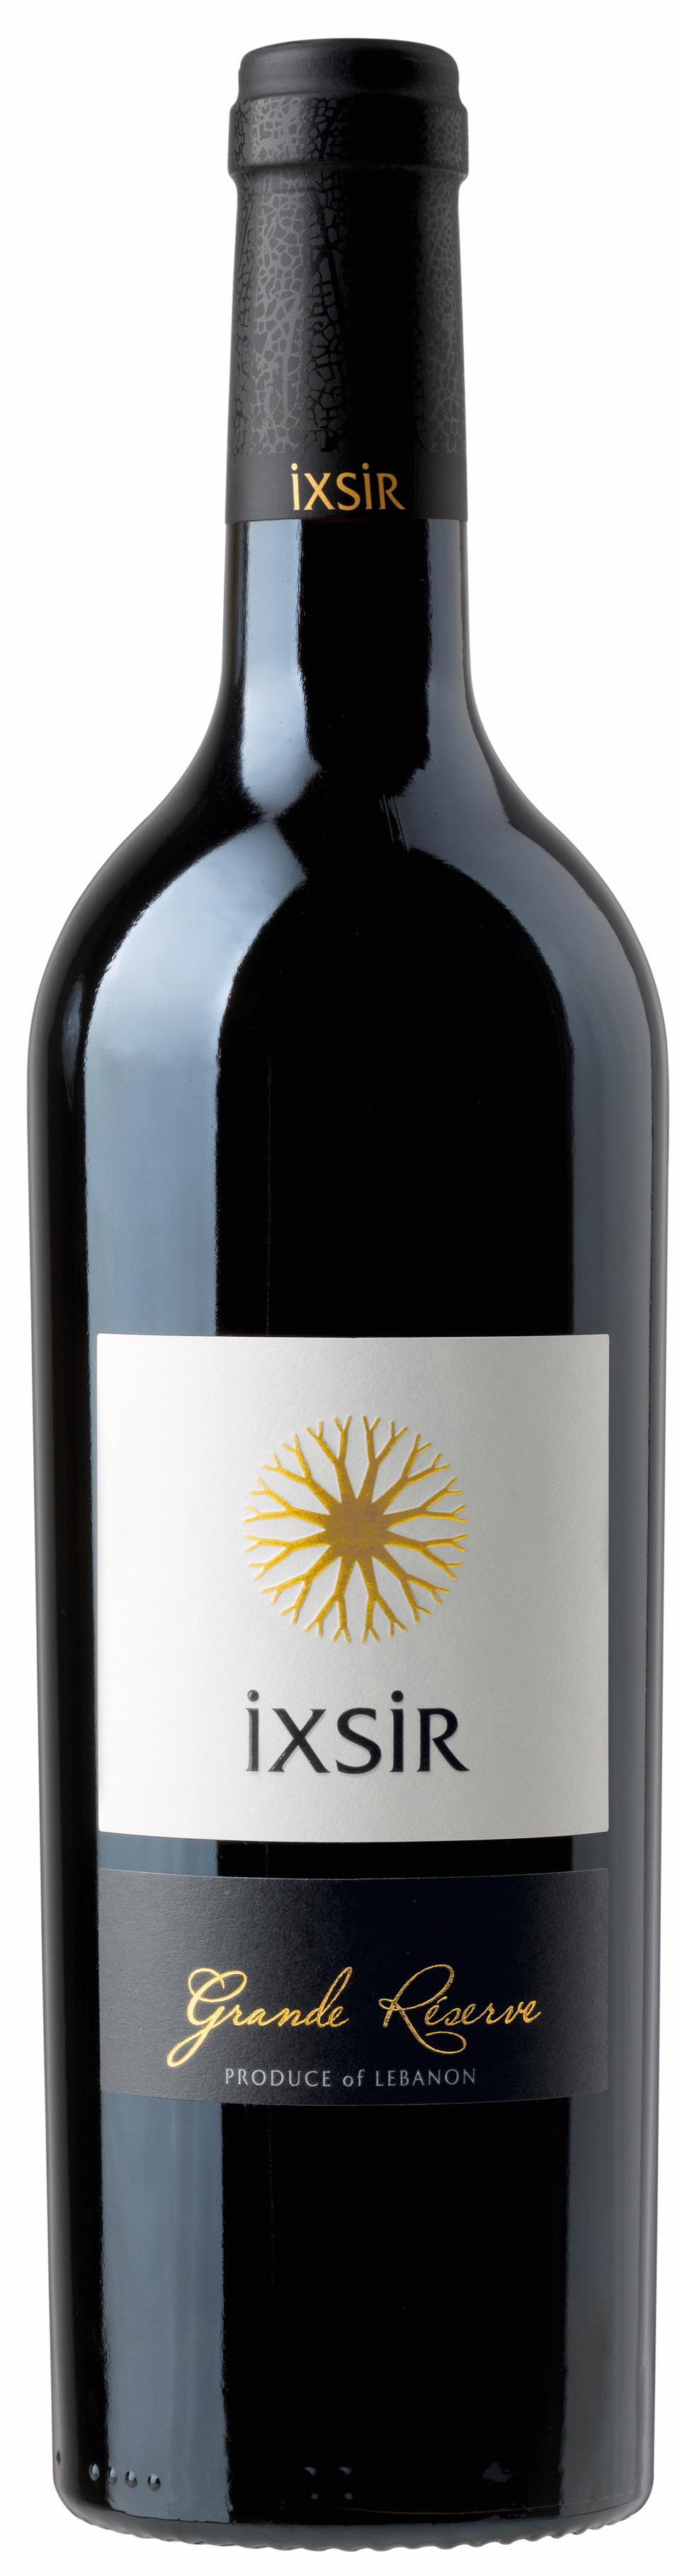 Grand Reserve wine from IXSIR